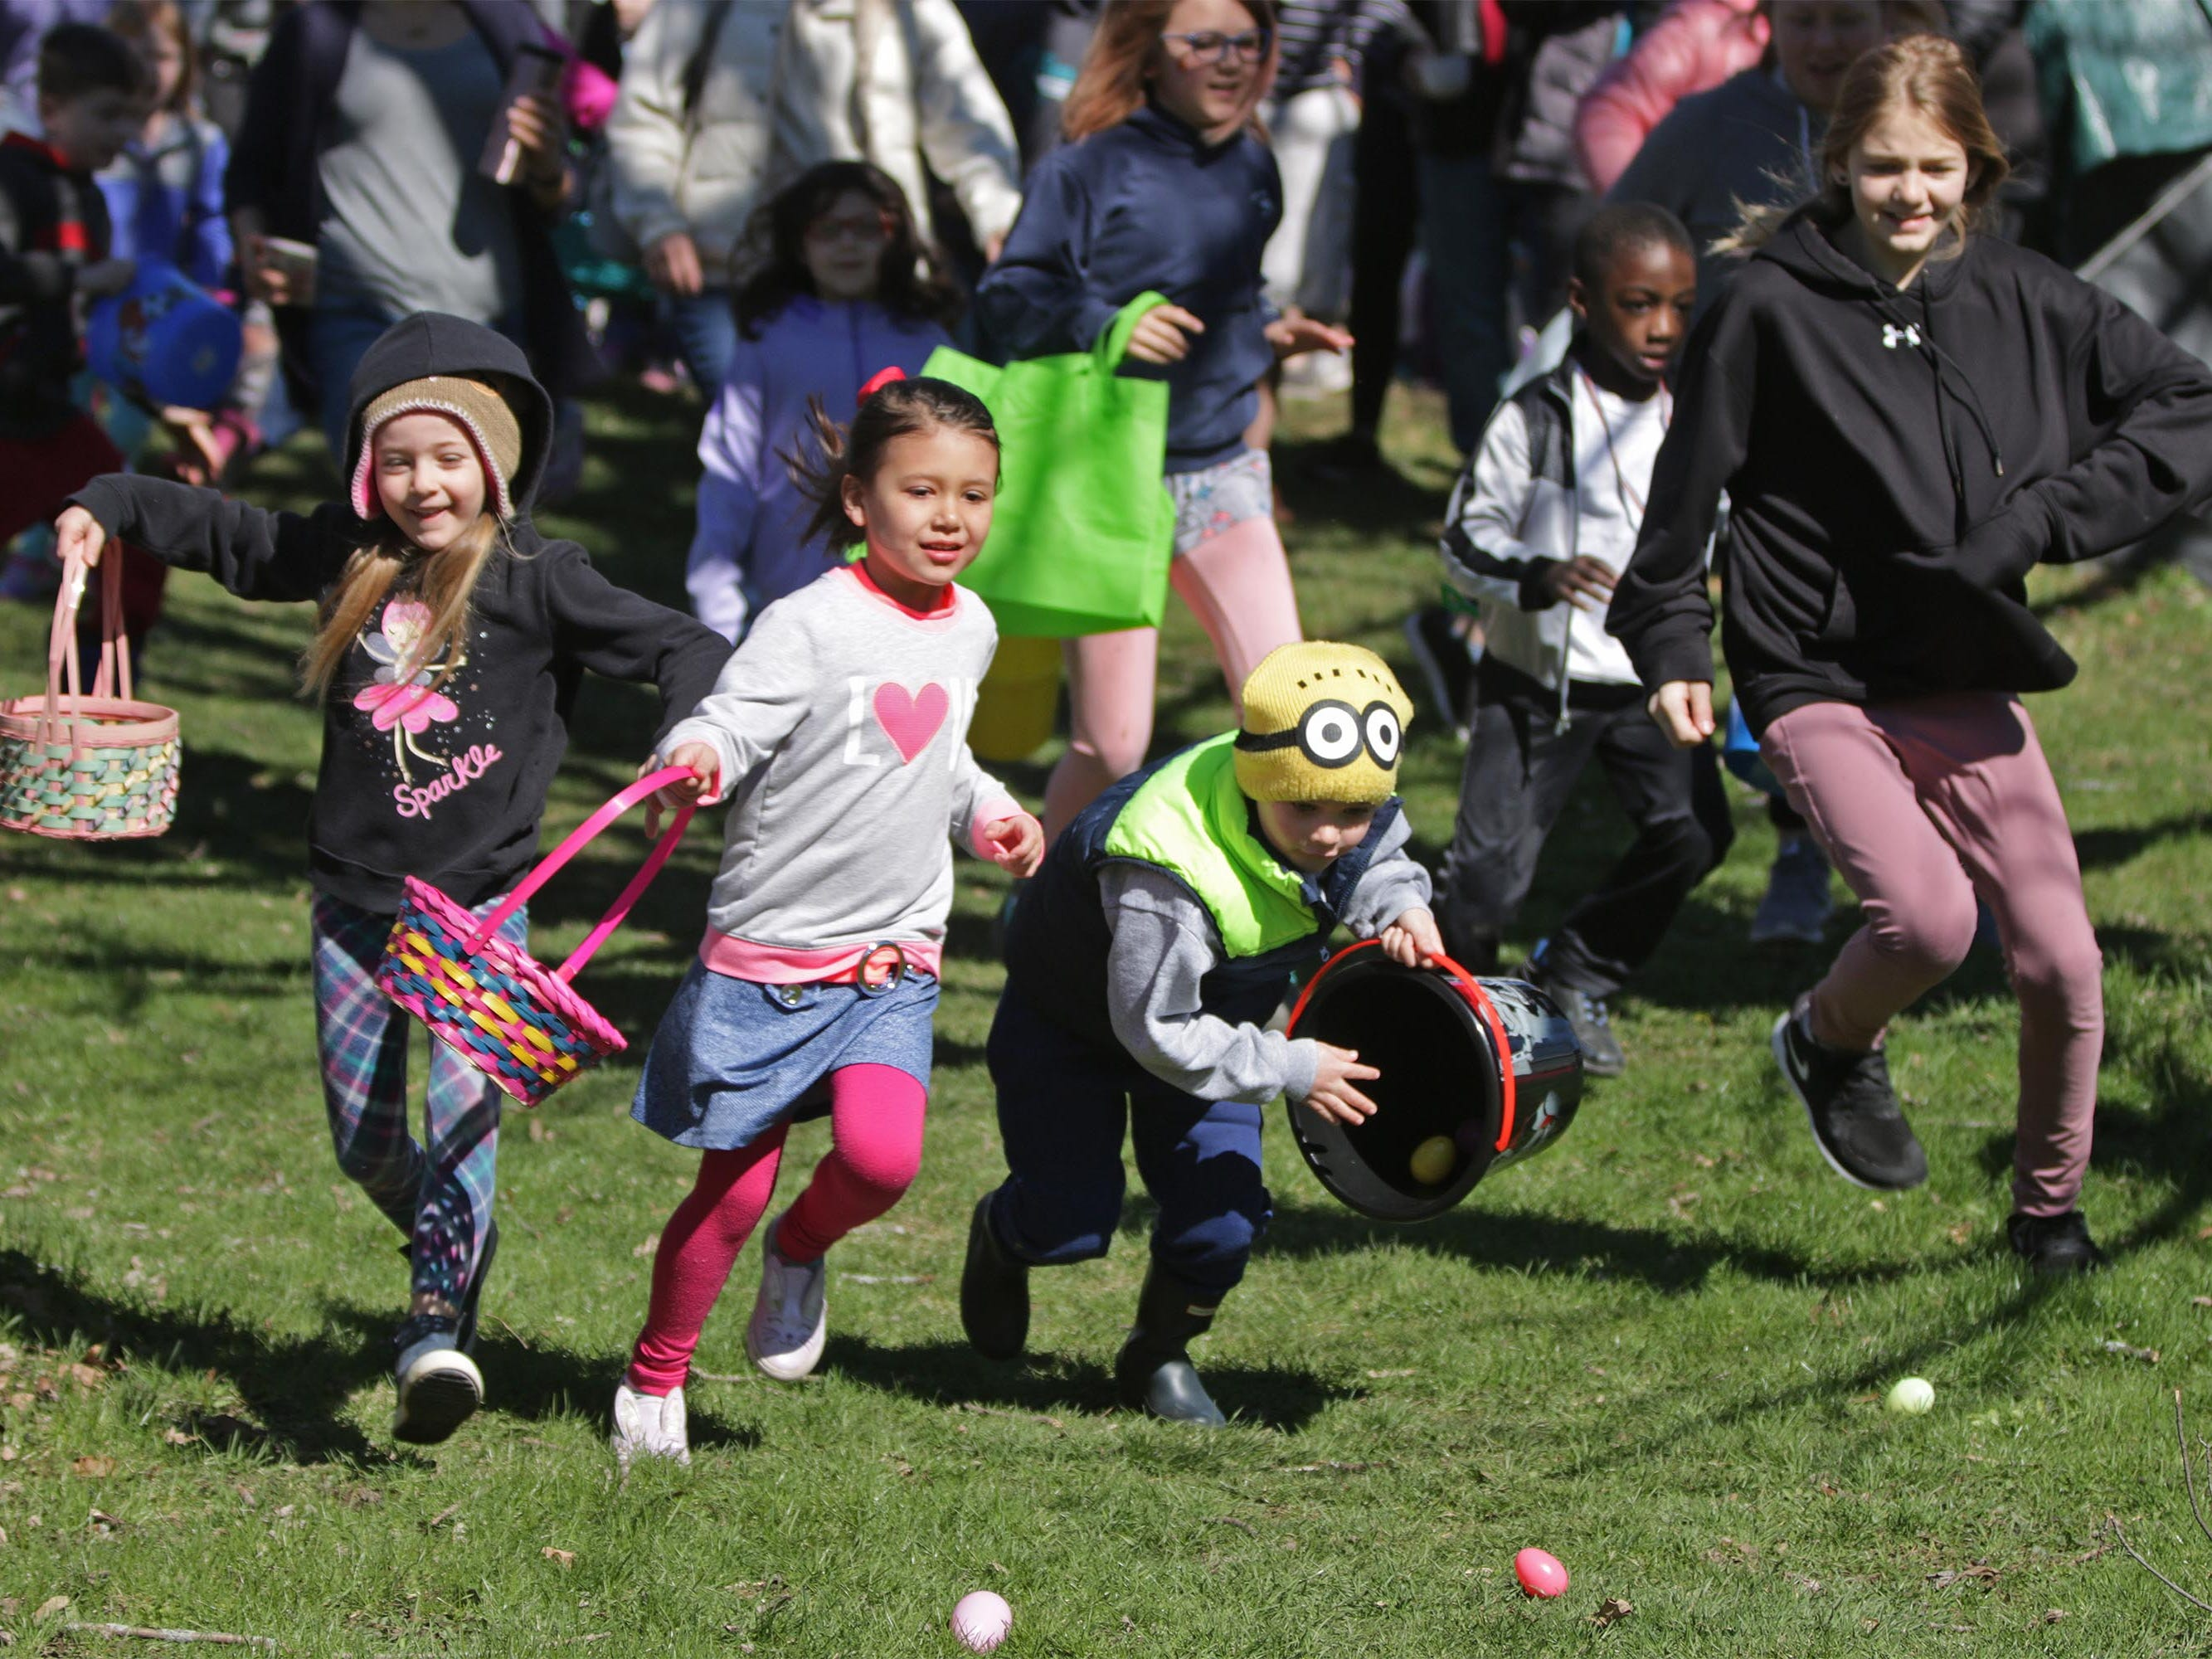 Children scamper to gather eggs at the annual Hocevar Easter Egg Hunt, Saturday, April 20, 2019, in Sheboygan Falls, Wis.  This years marks 25 years for the Hocevar Family holding an Easter egg hunt at their home, according to Kathy Hocevar.